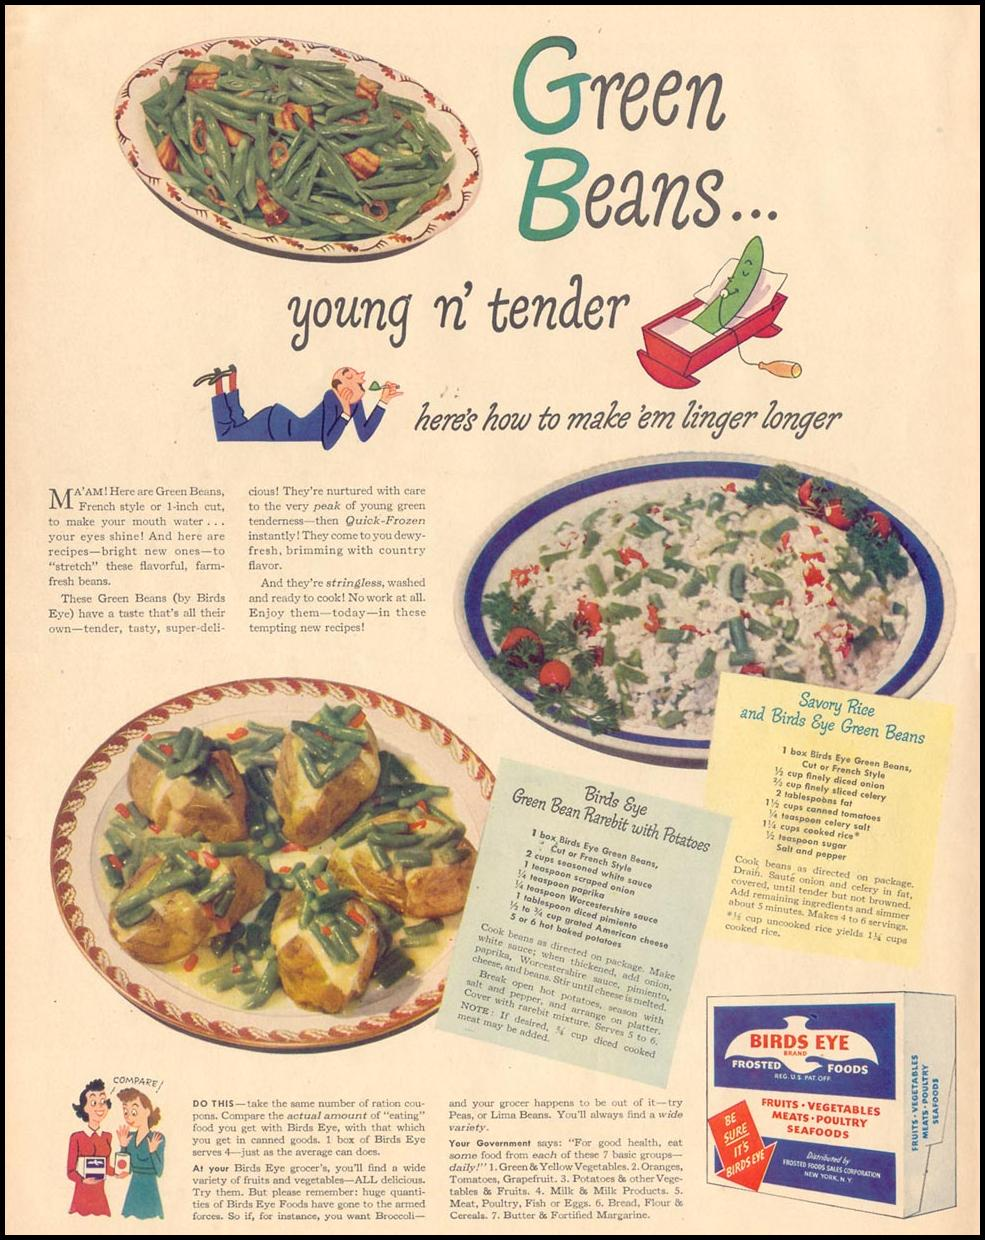 BIRDS EYE FROSTED FOODS LIFE 11/08/1943